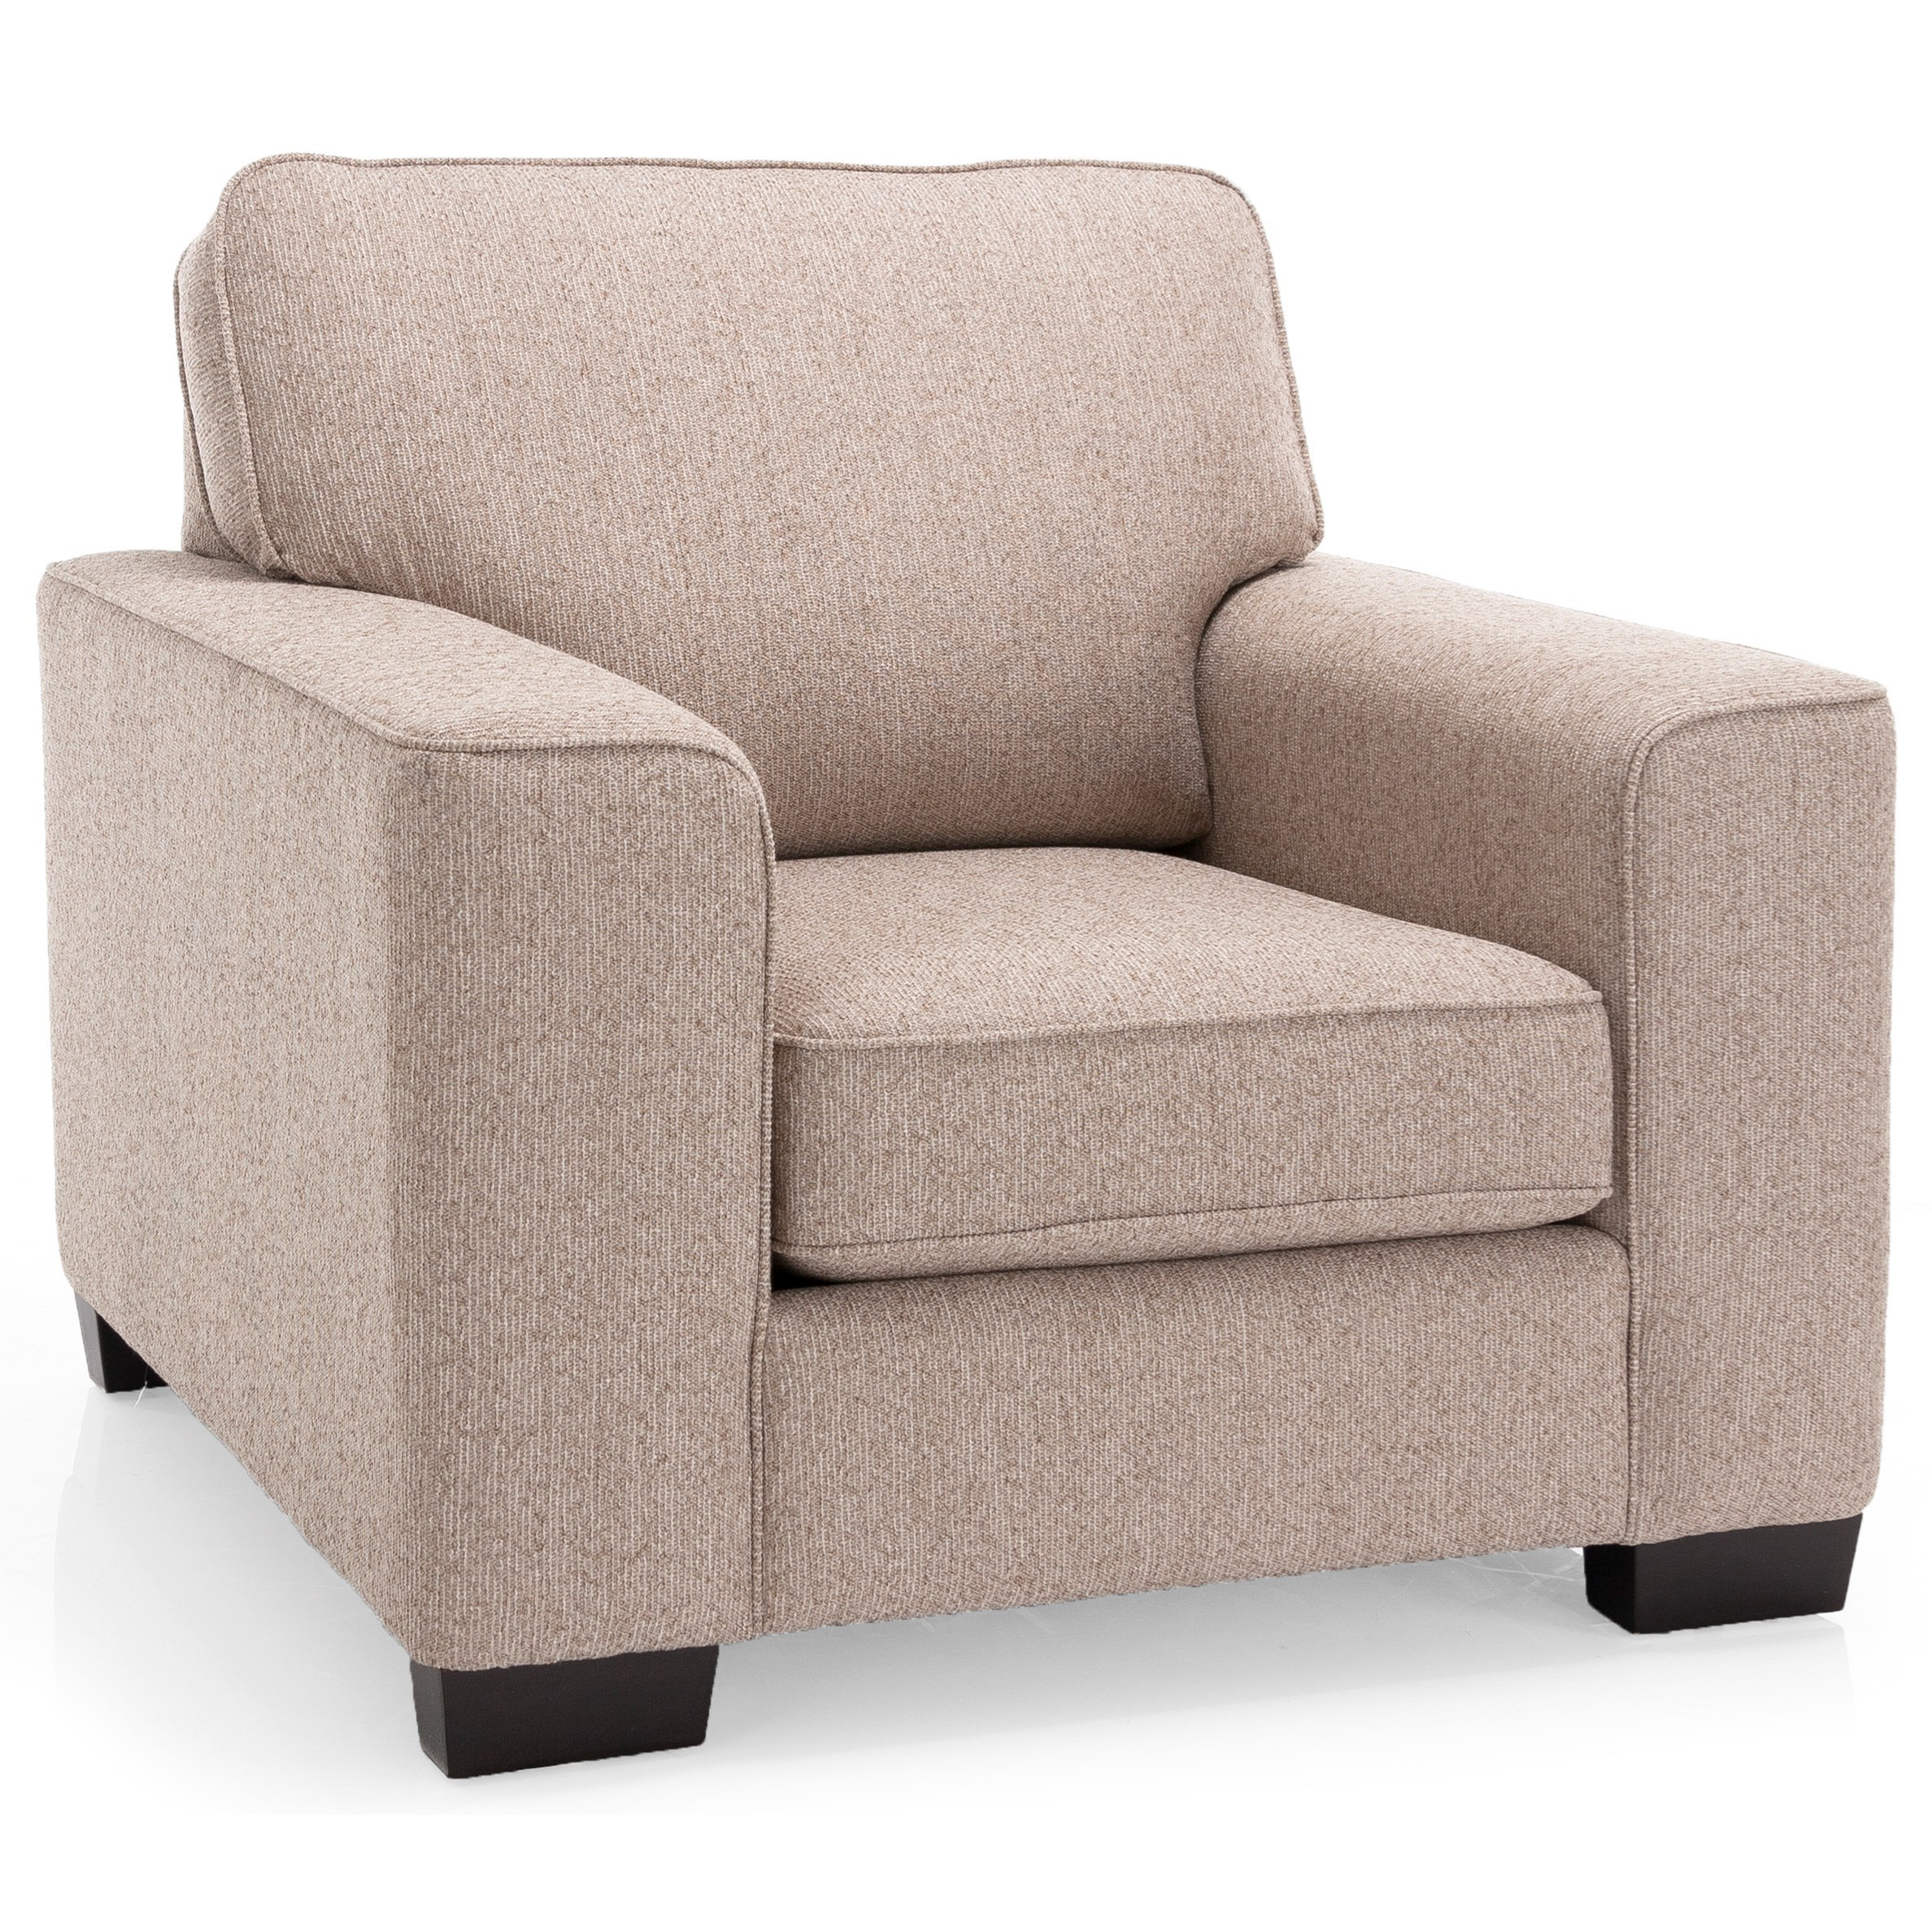 2483 Chair by Decor-Rest at Stoney Creek Furniture